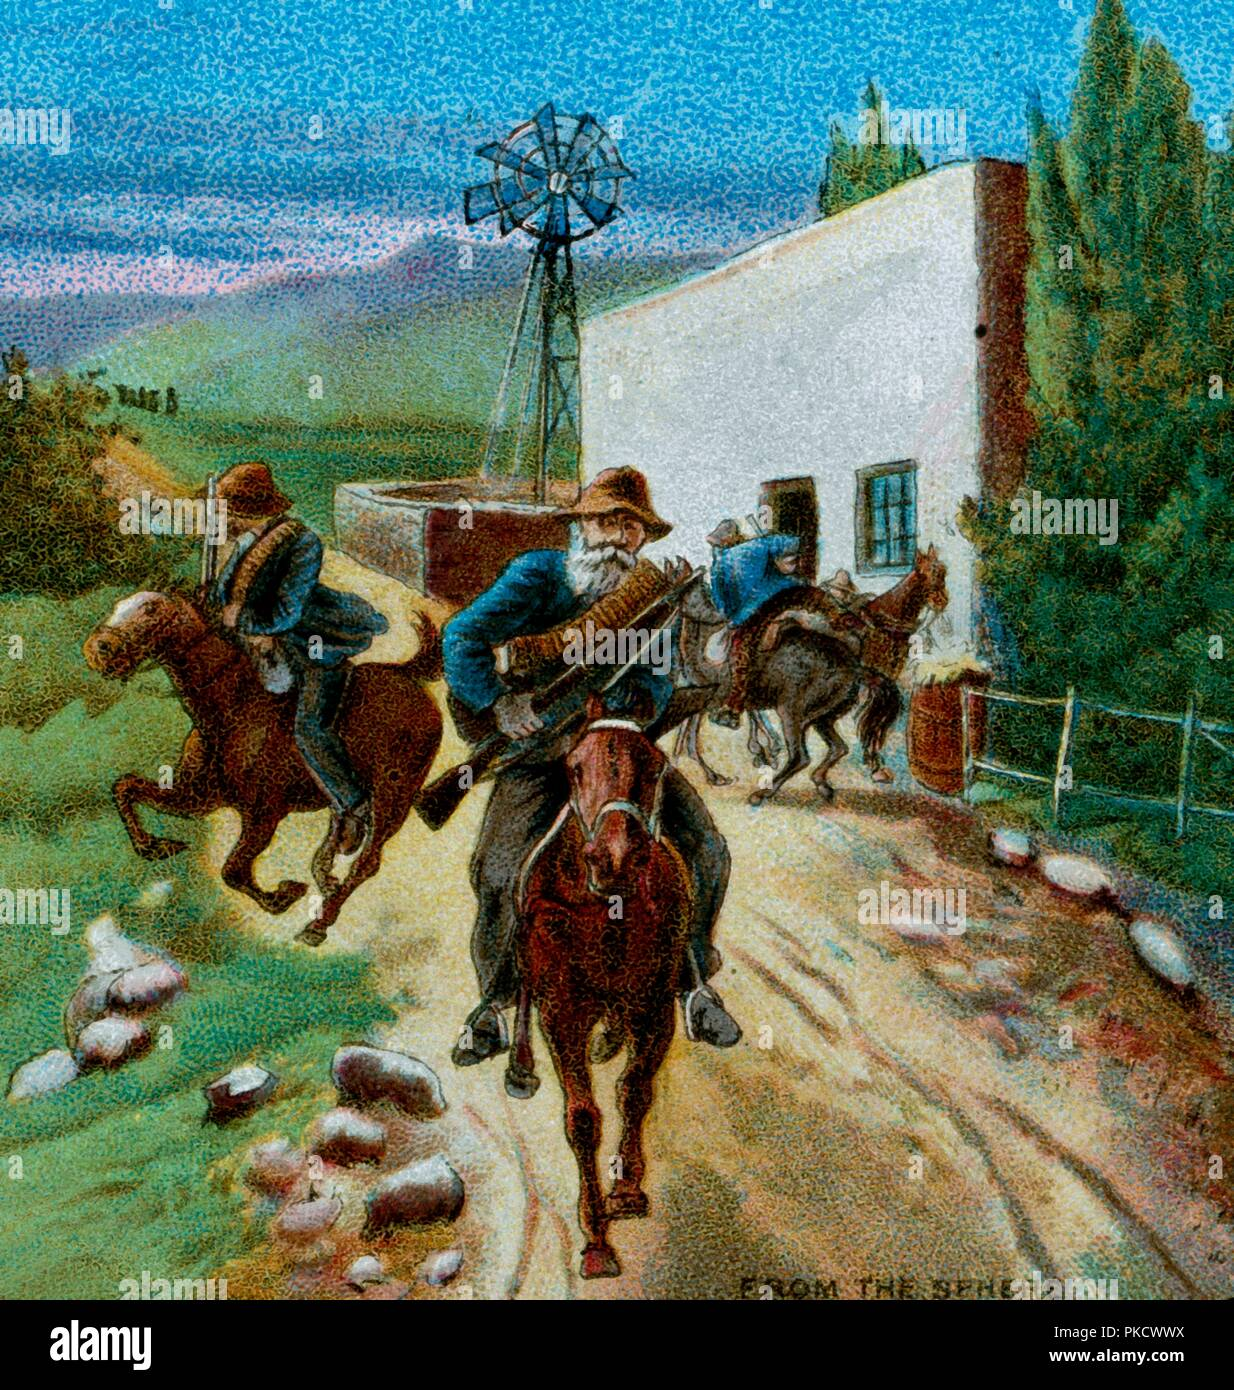 'Boers Retreating from a Farmhouse', 1900. Scene from the Second Anglo-Boer War (1899-1902) fought in what is now South Africa, between Great Britain and the independent Boer republics of the Orange Free State and the South African Republic (known as as the Transvaal by the British). From Coloured Lantern Slides. Junior Lecturers' Series. The Boer War of 1900: Chapter IV -- Cronje and Bloemfontein. [W. Butcher and Sons, London, 1900] - Stock Image